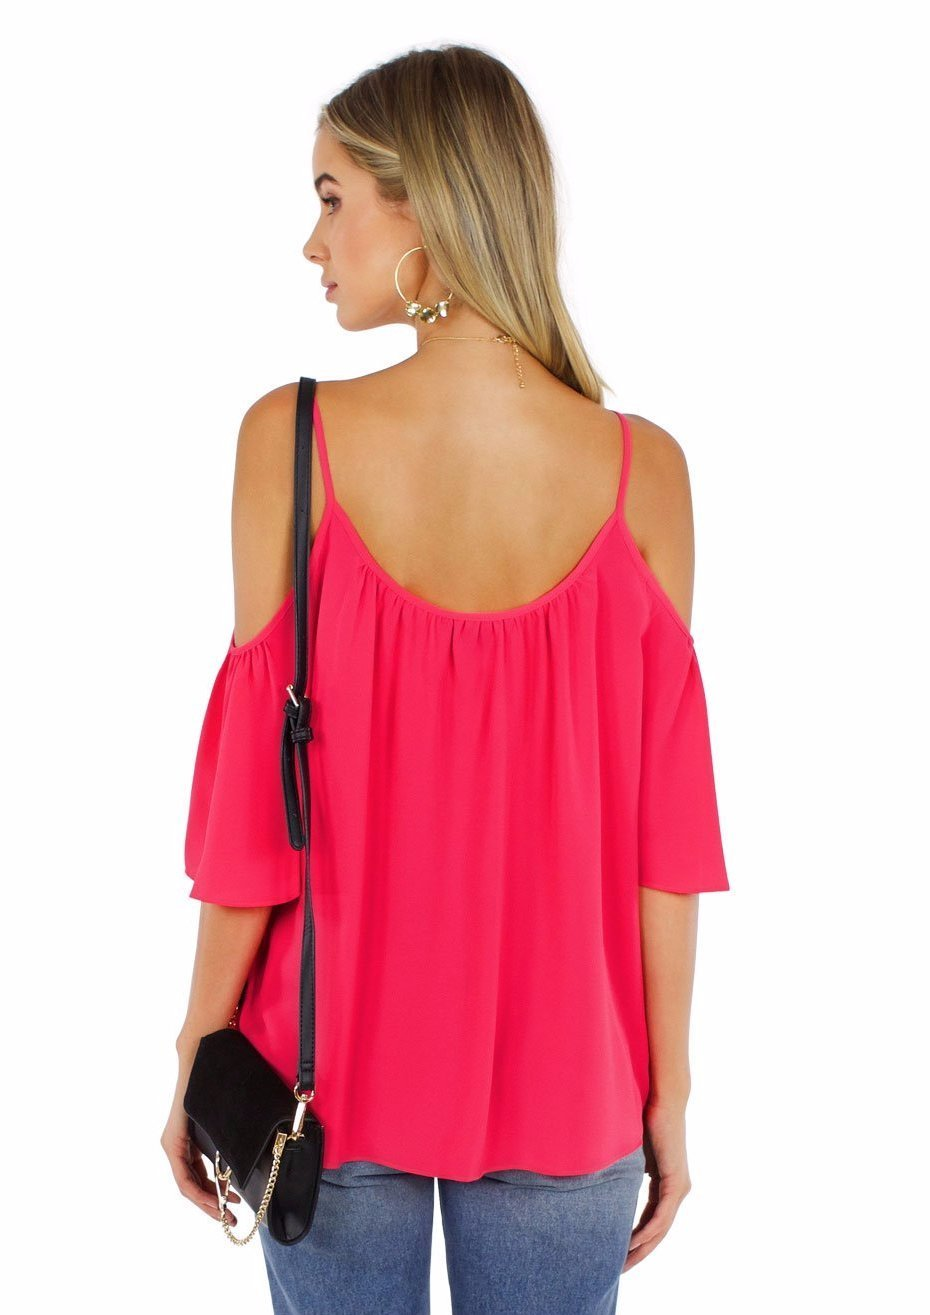 Women wearing a top rental from French Connection called Crepe Light Cut Out Shoulder Top